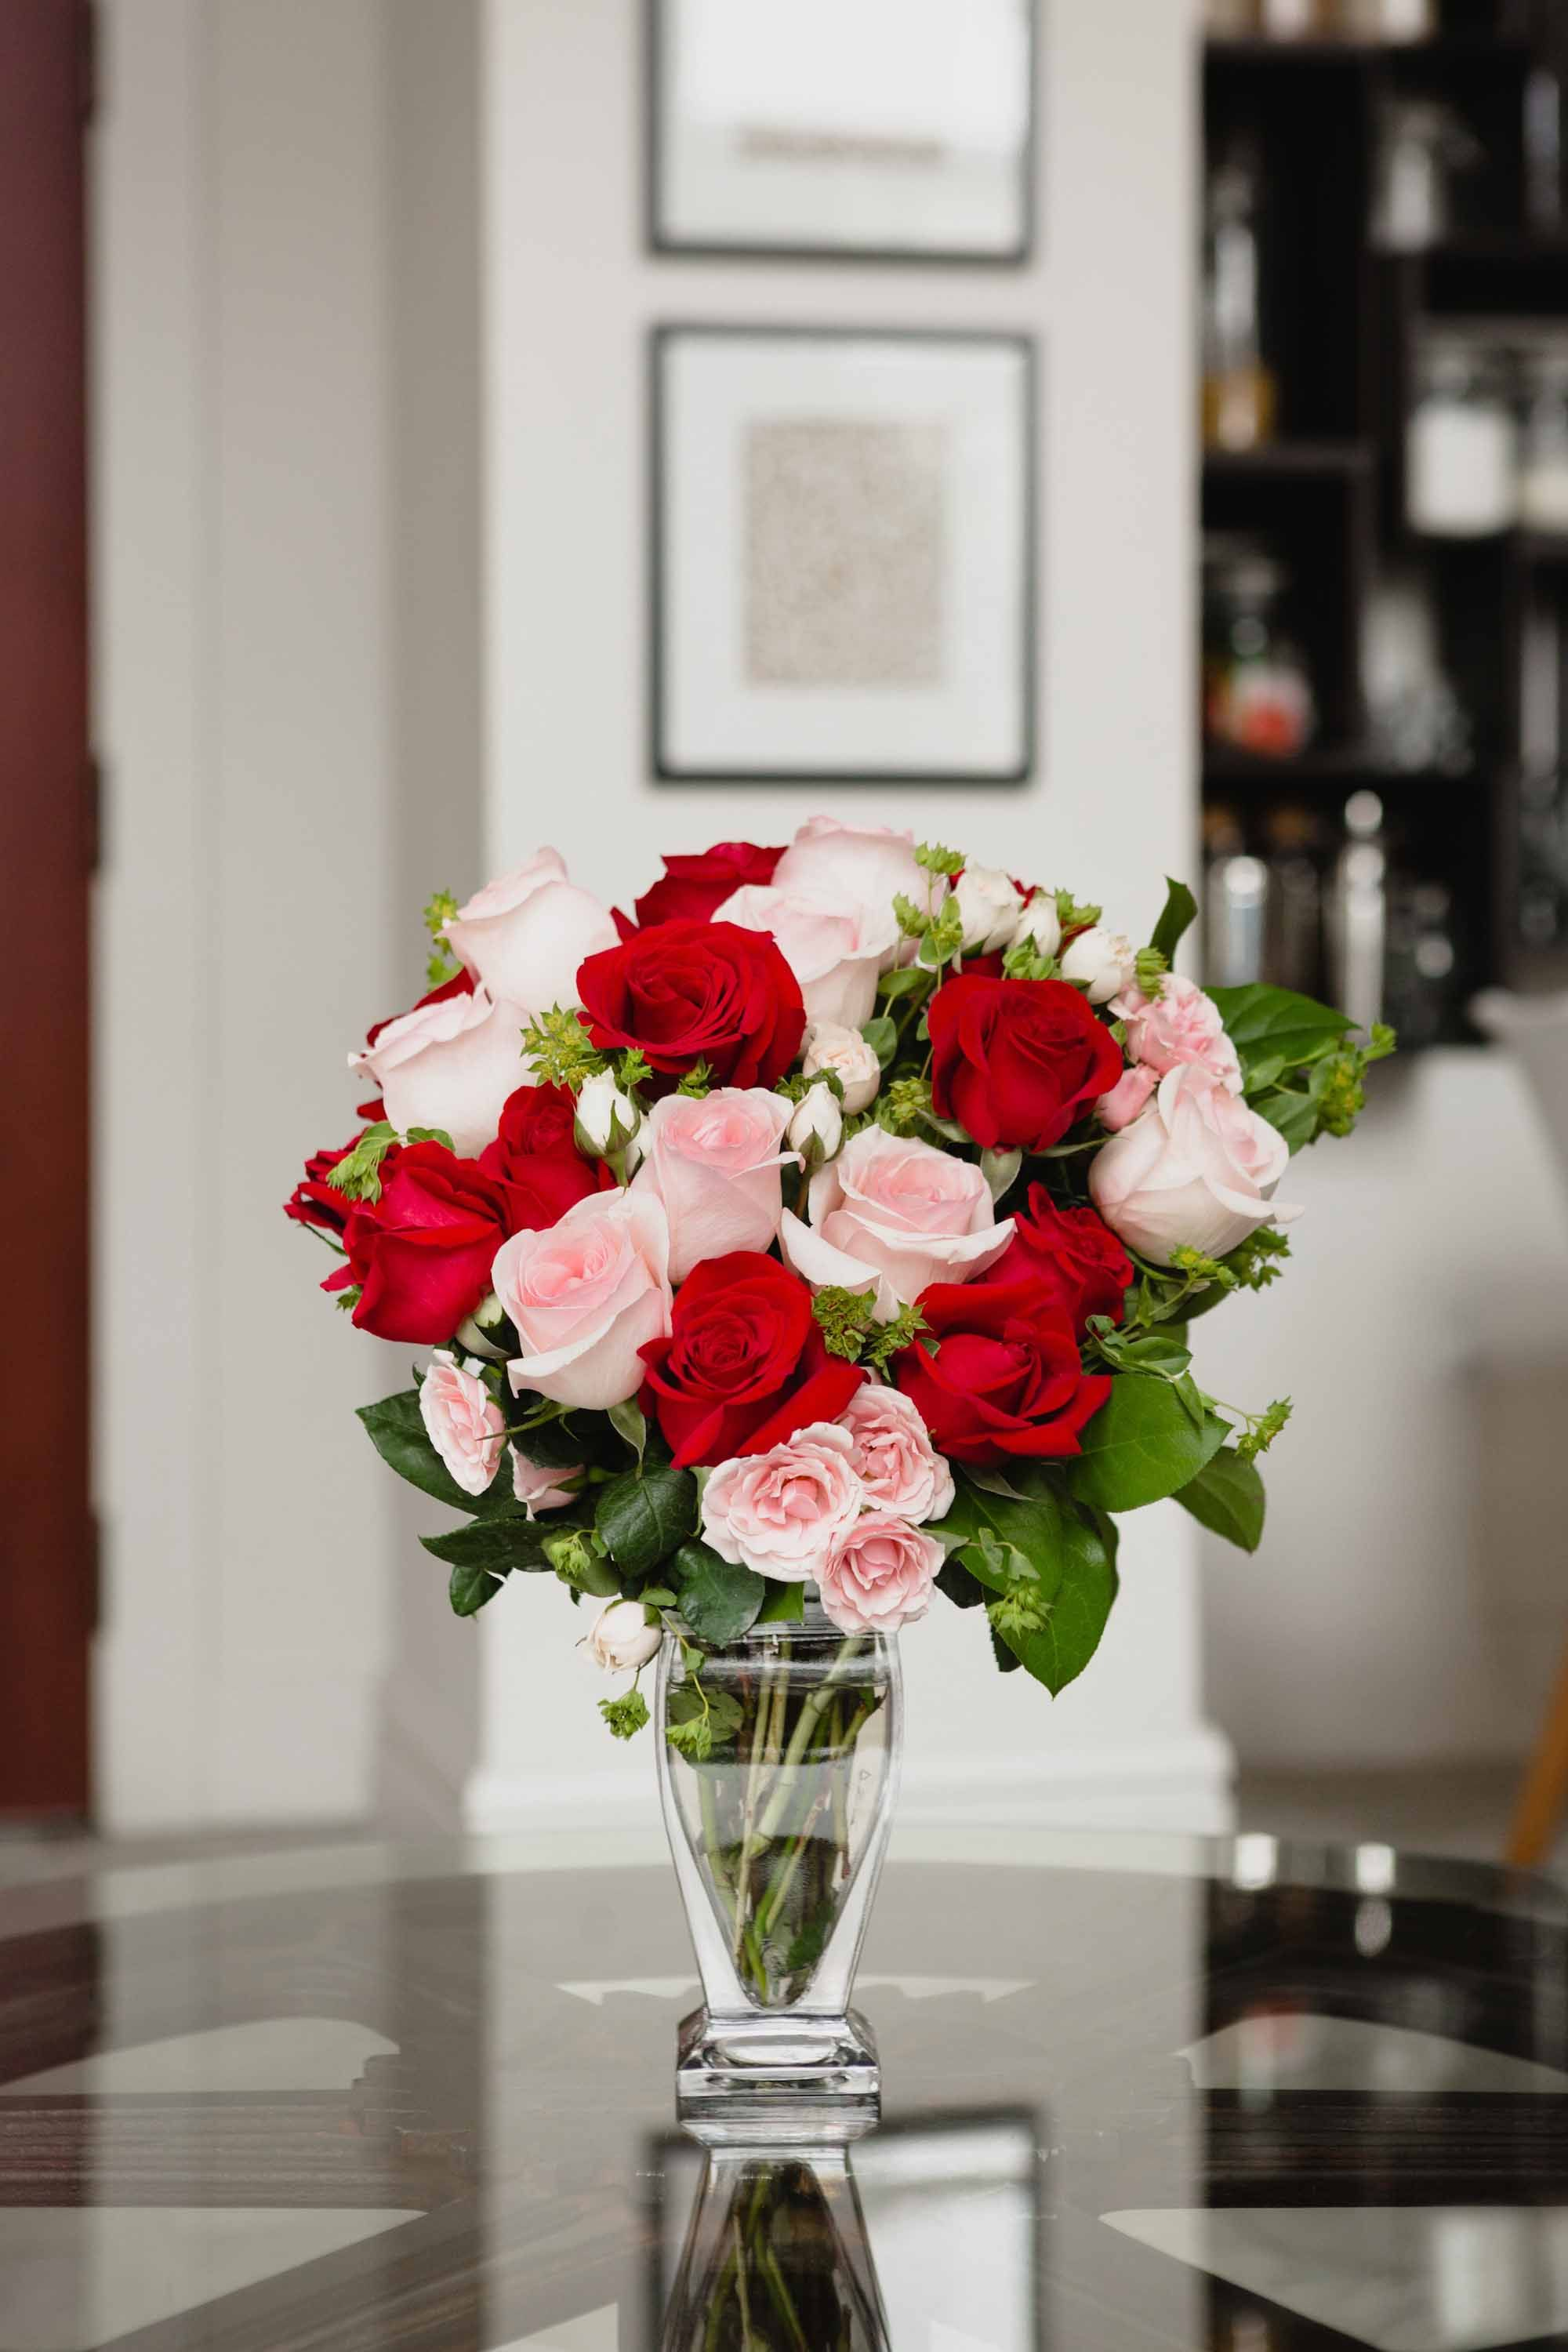 Cupids creation by teleflora valentines day flowers